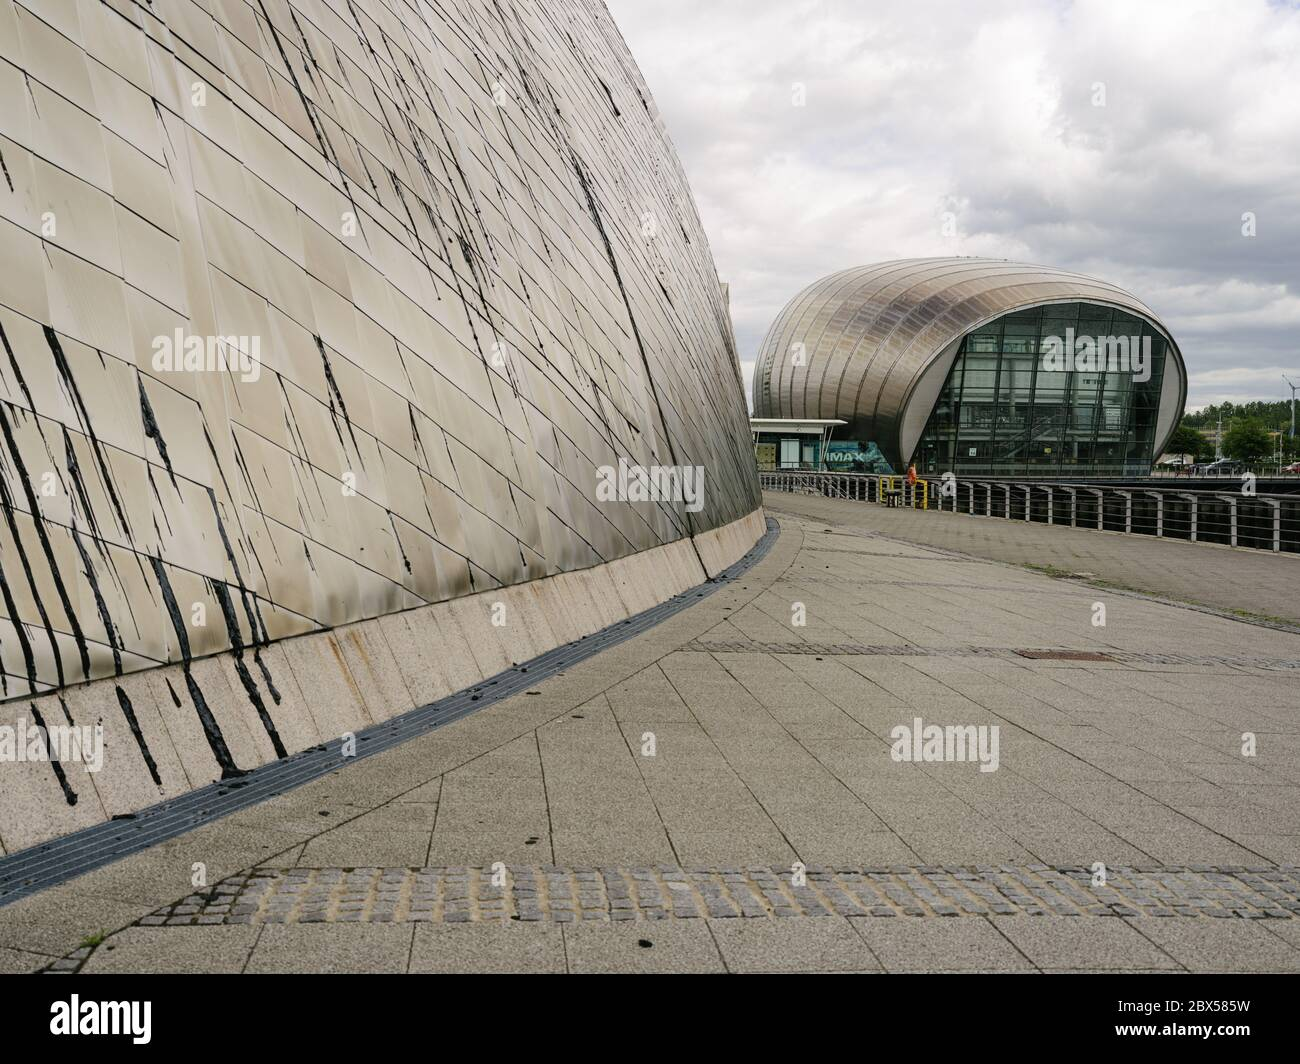 Glasgow Science Centre and the Imax Cinema on the redeveloped and regenerated Pacific Quay and Princes Dock Basin on the river Clyde.. Stock Photo